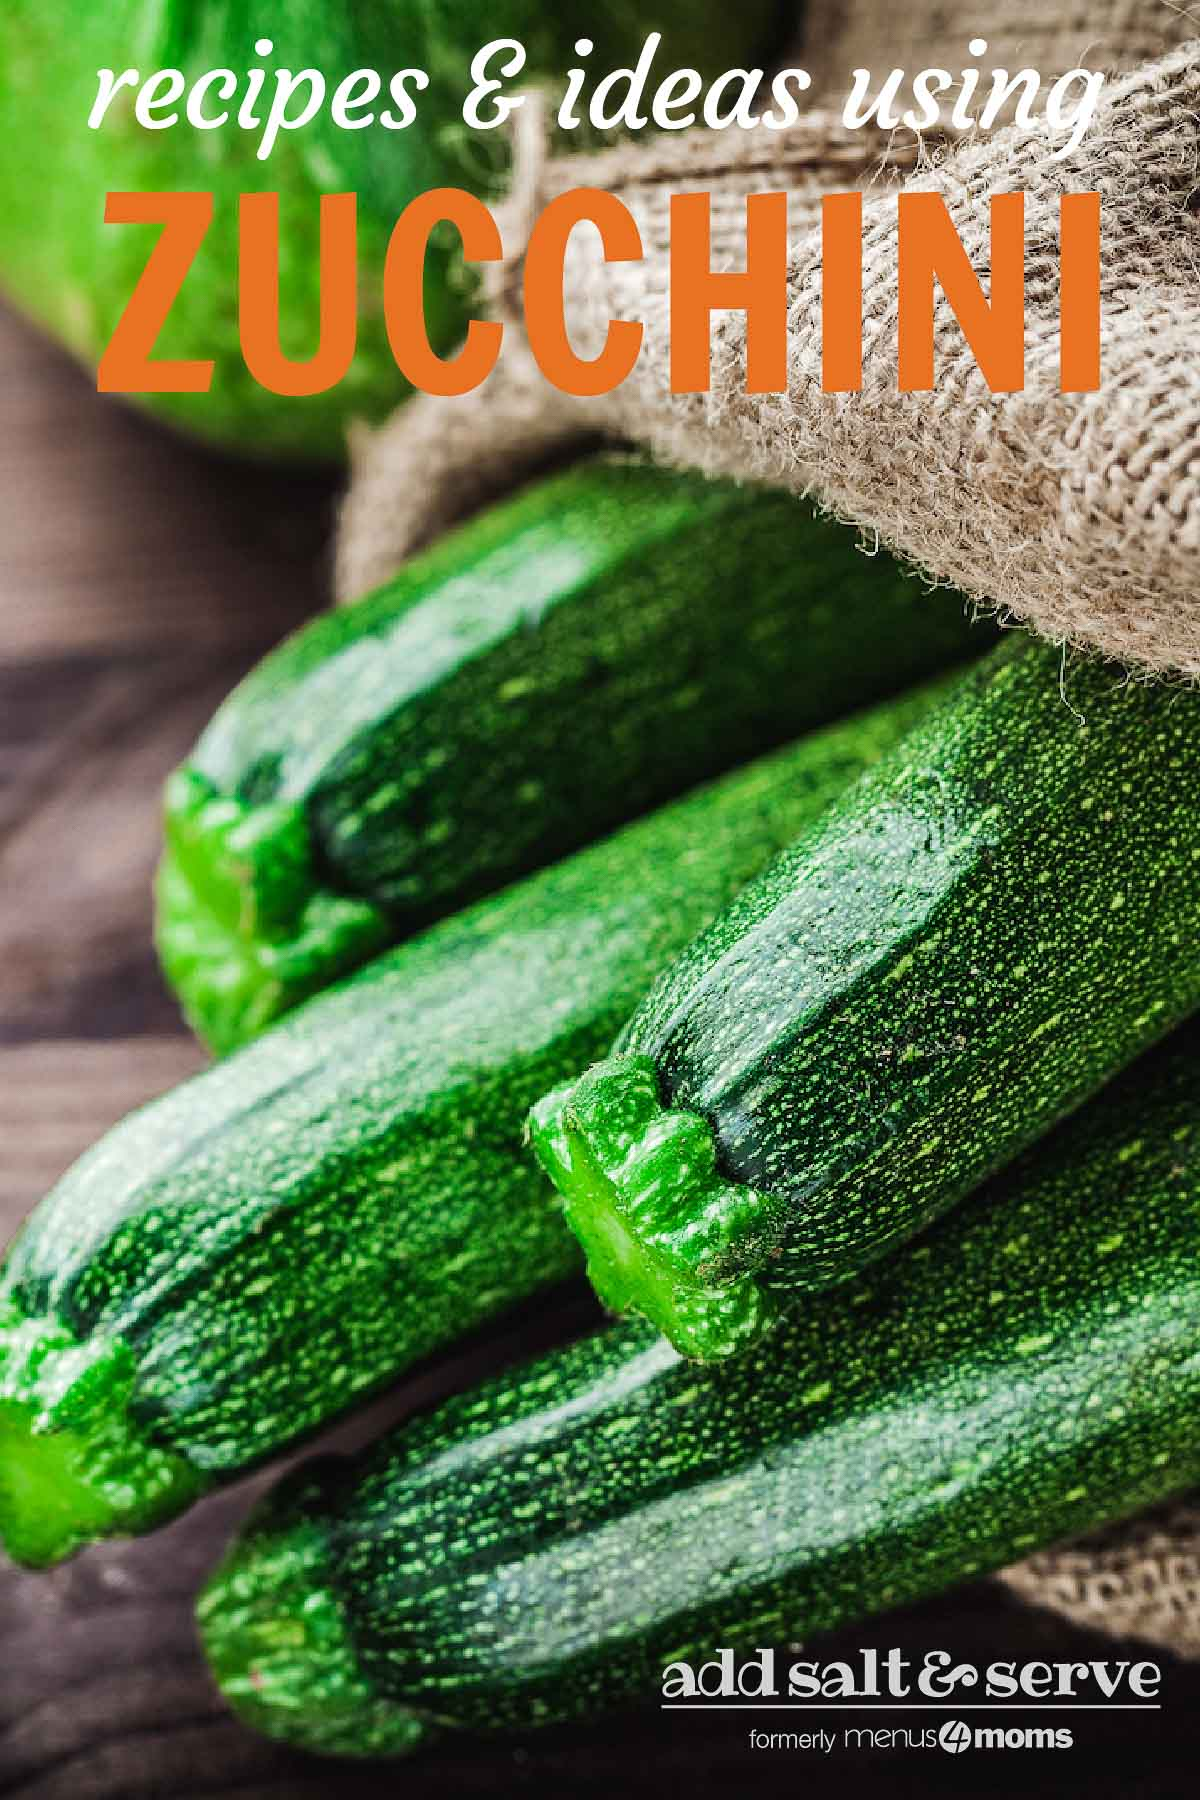 Jute bag filled with zucchini on a wooden surface with text Recipes & ideas using zucchini - Add Salt & Serve